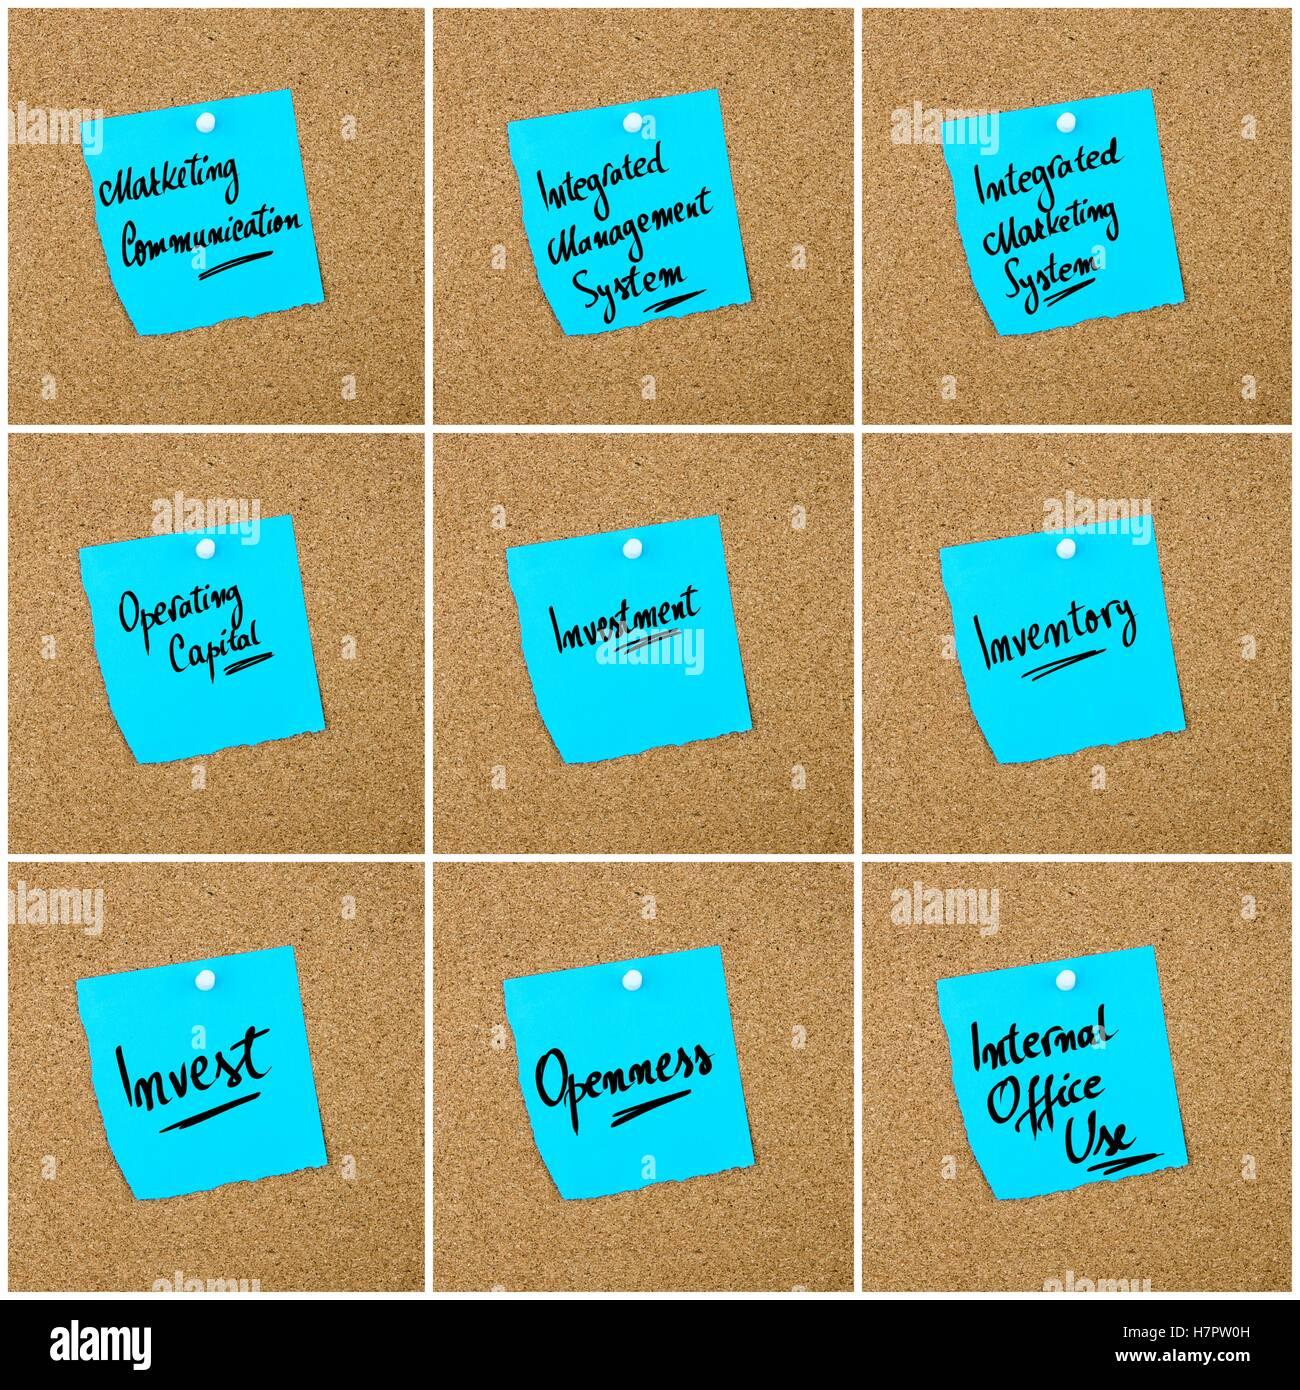 Collage of Business Acronyms written on blue paper note pinned on cork board with white thumbtack, copy space available - Stock Image